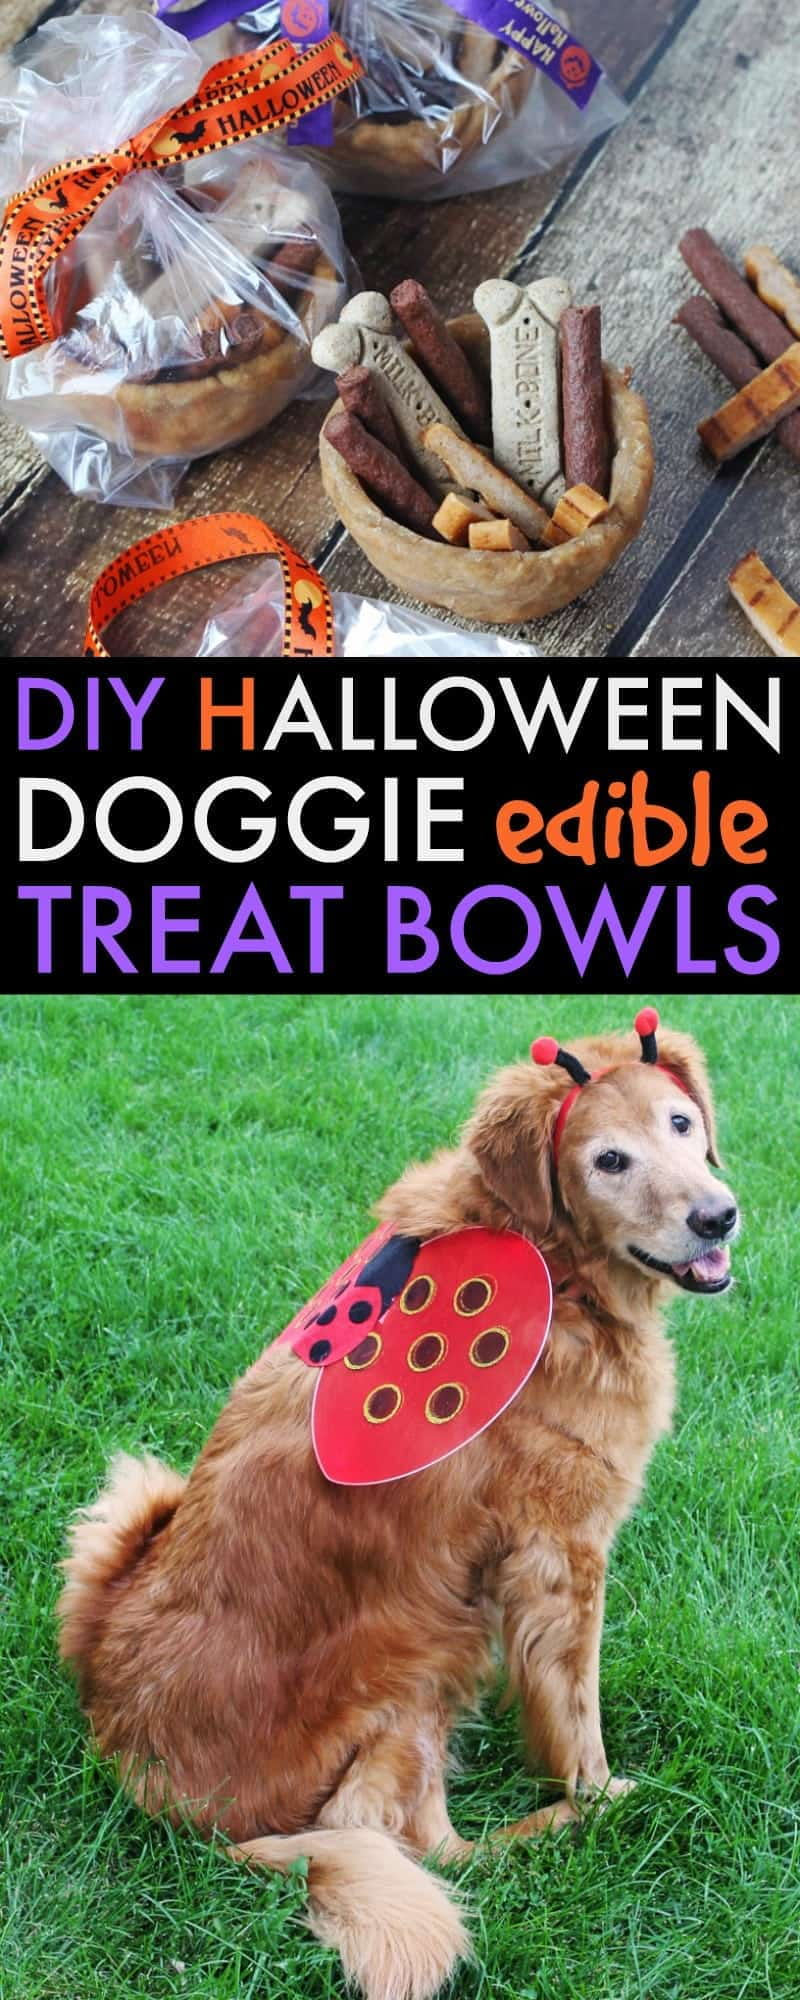 DIY Halloween Doggie Edible Treat Bowls. Fill these homemade bowls with fun dog-safe treats for your furry neighbors this Halloween. They are easy to make and are sure to make tails wag!